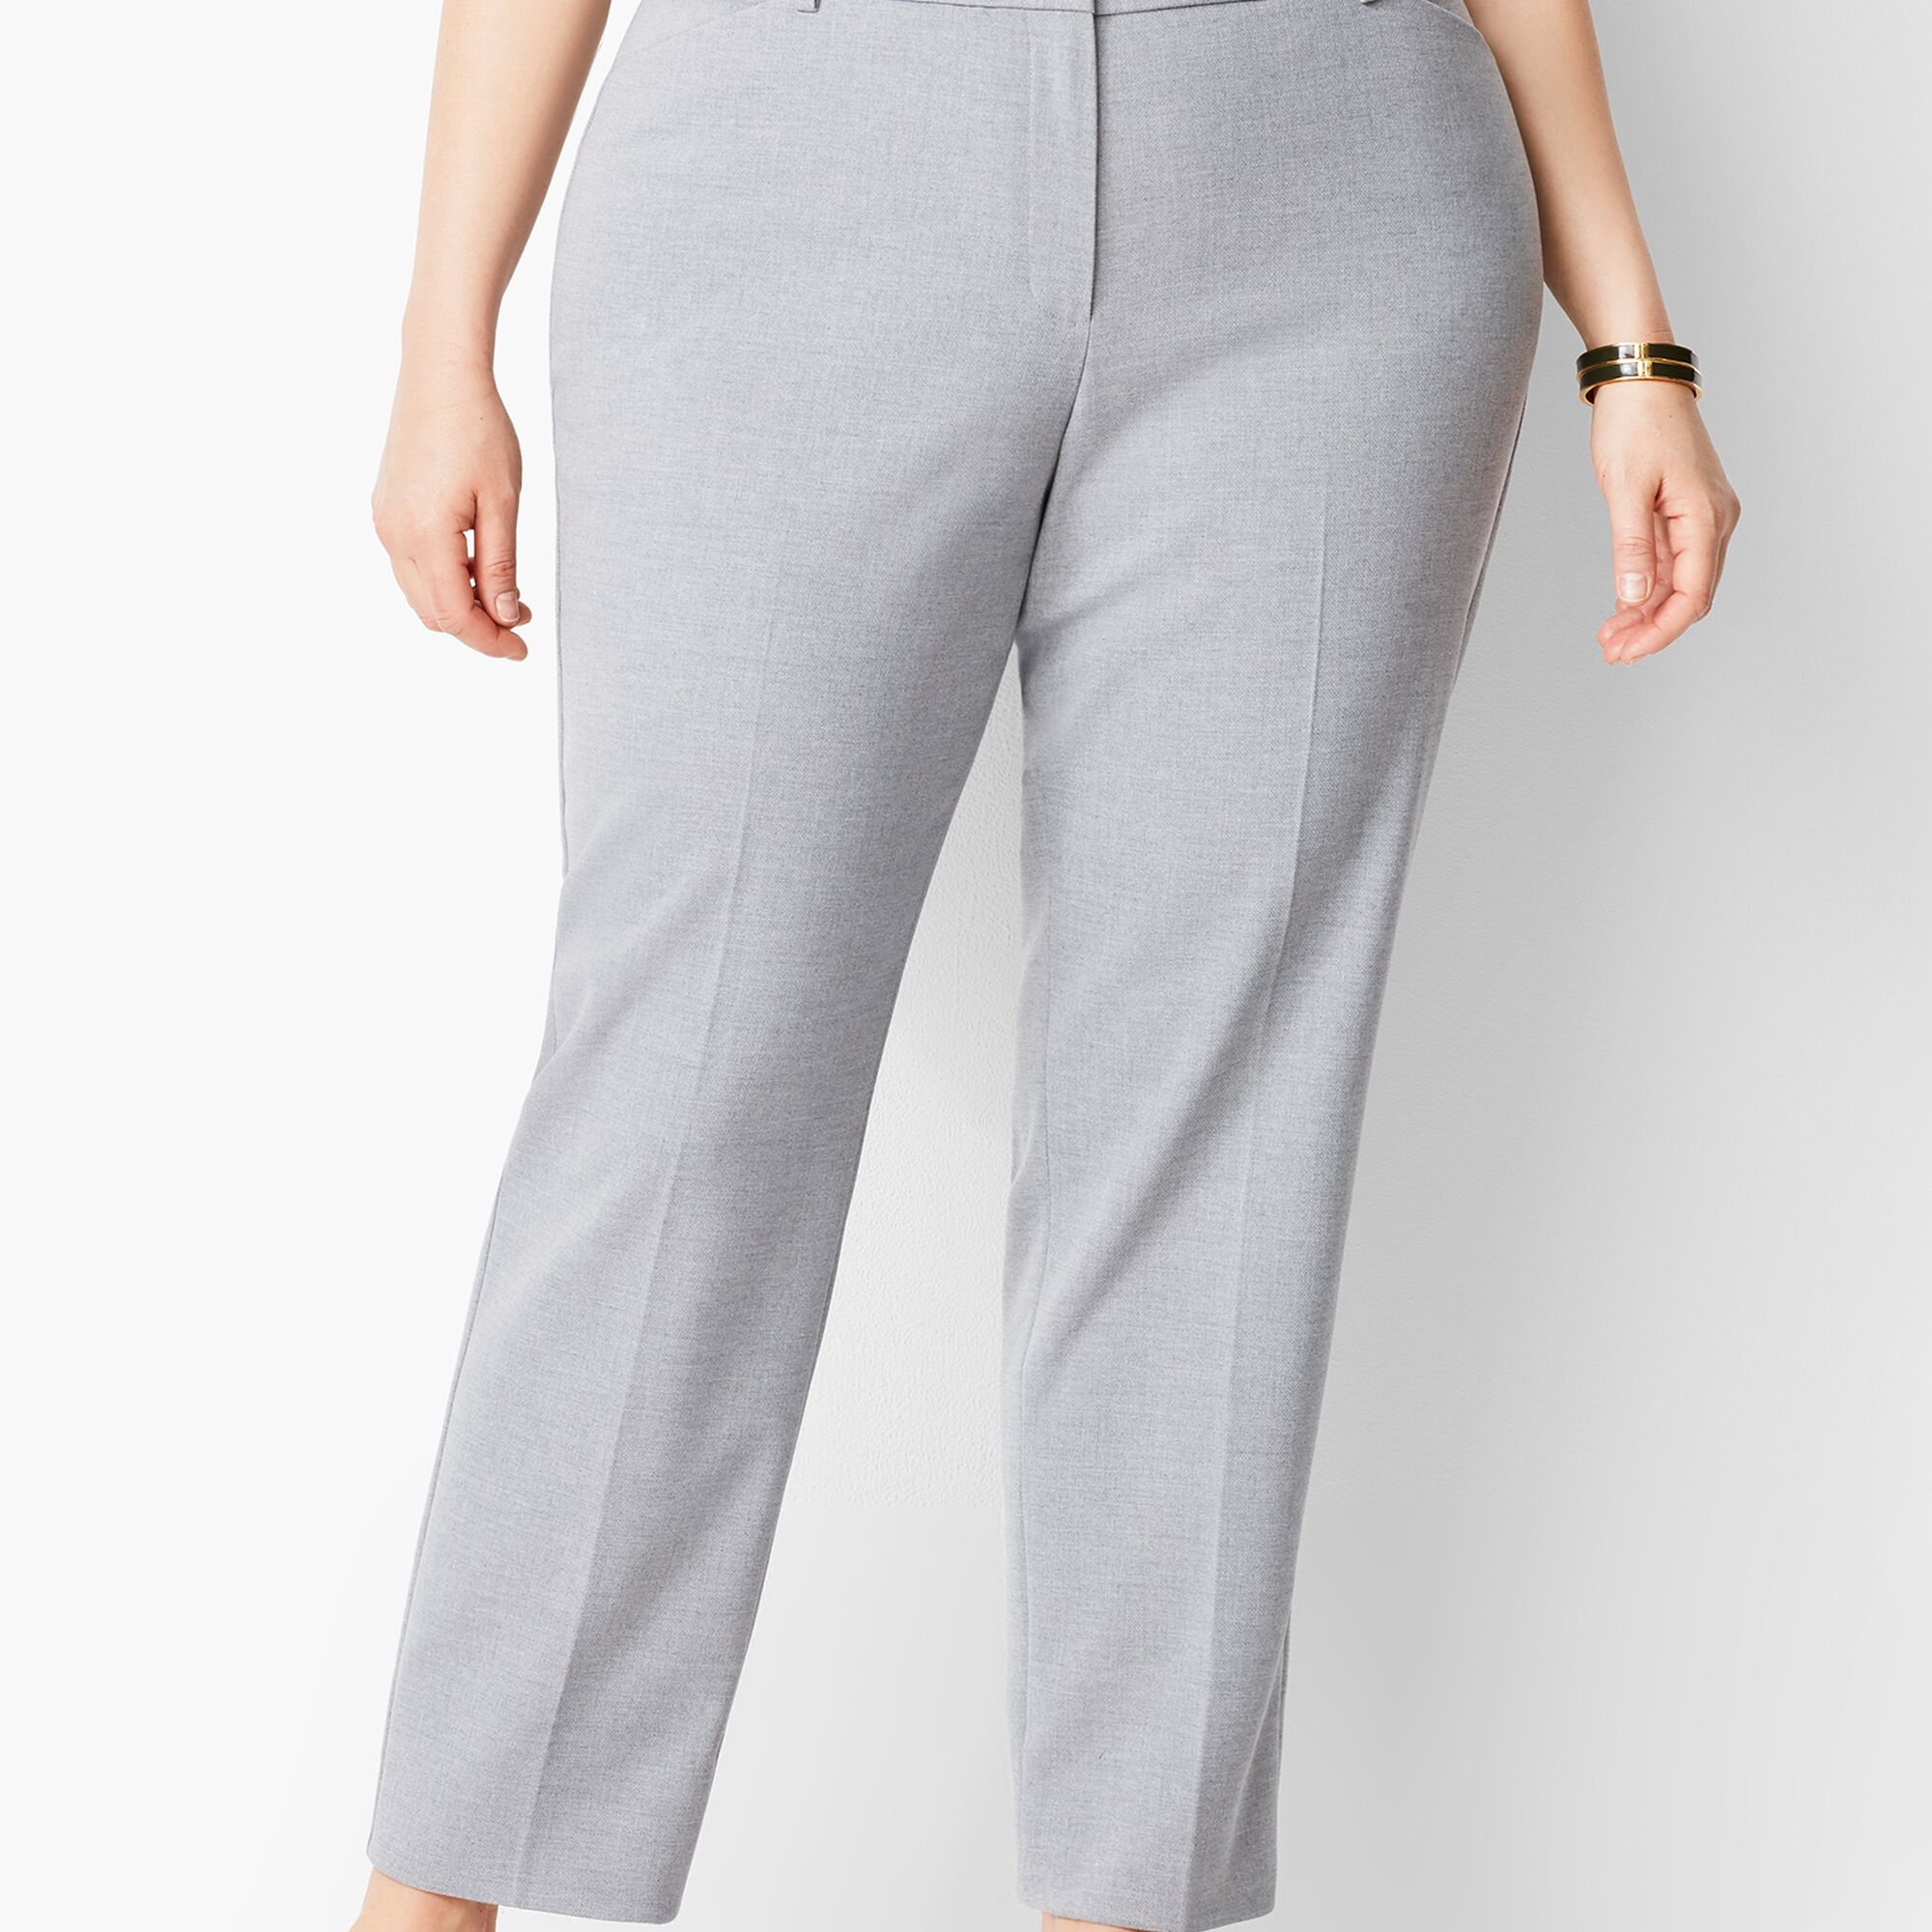 84b4a5af29 Plus Size High-Waist Tailored Ankle Pant - Grey Curvy Fit